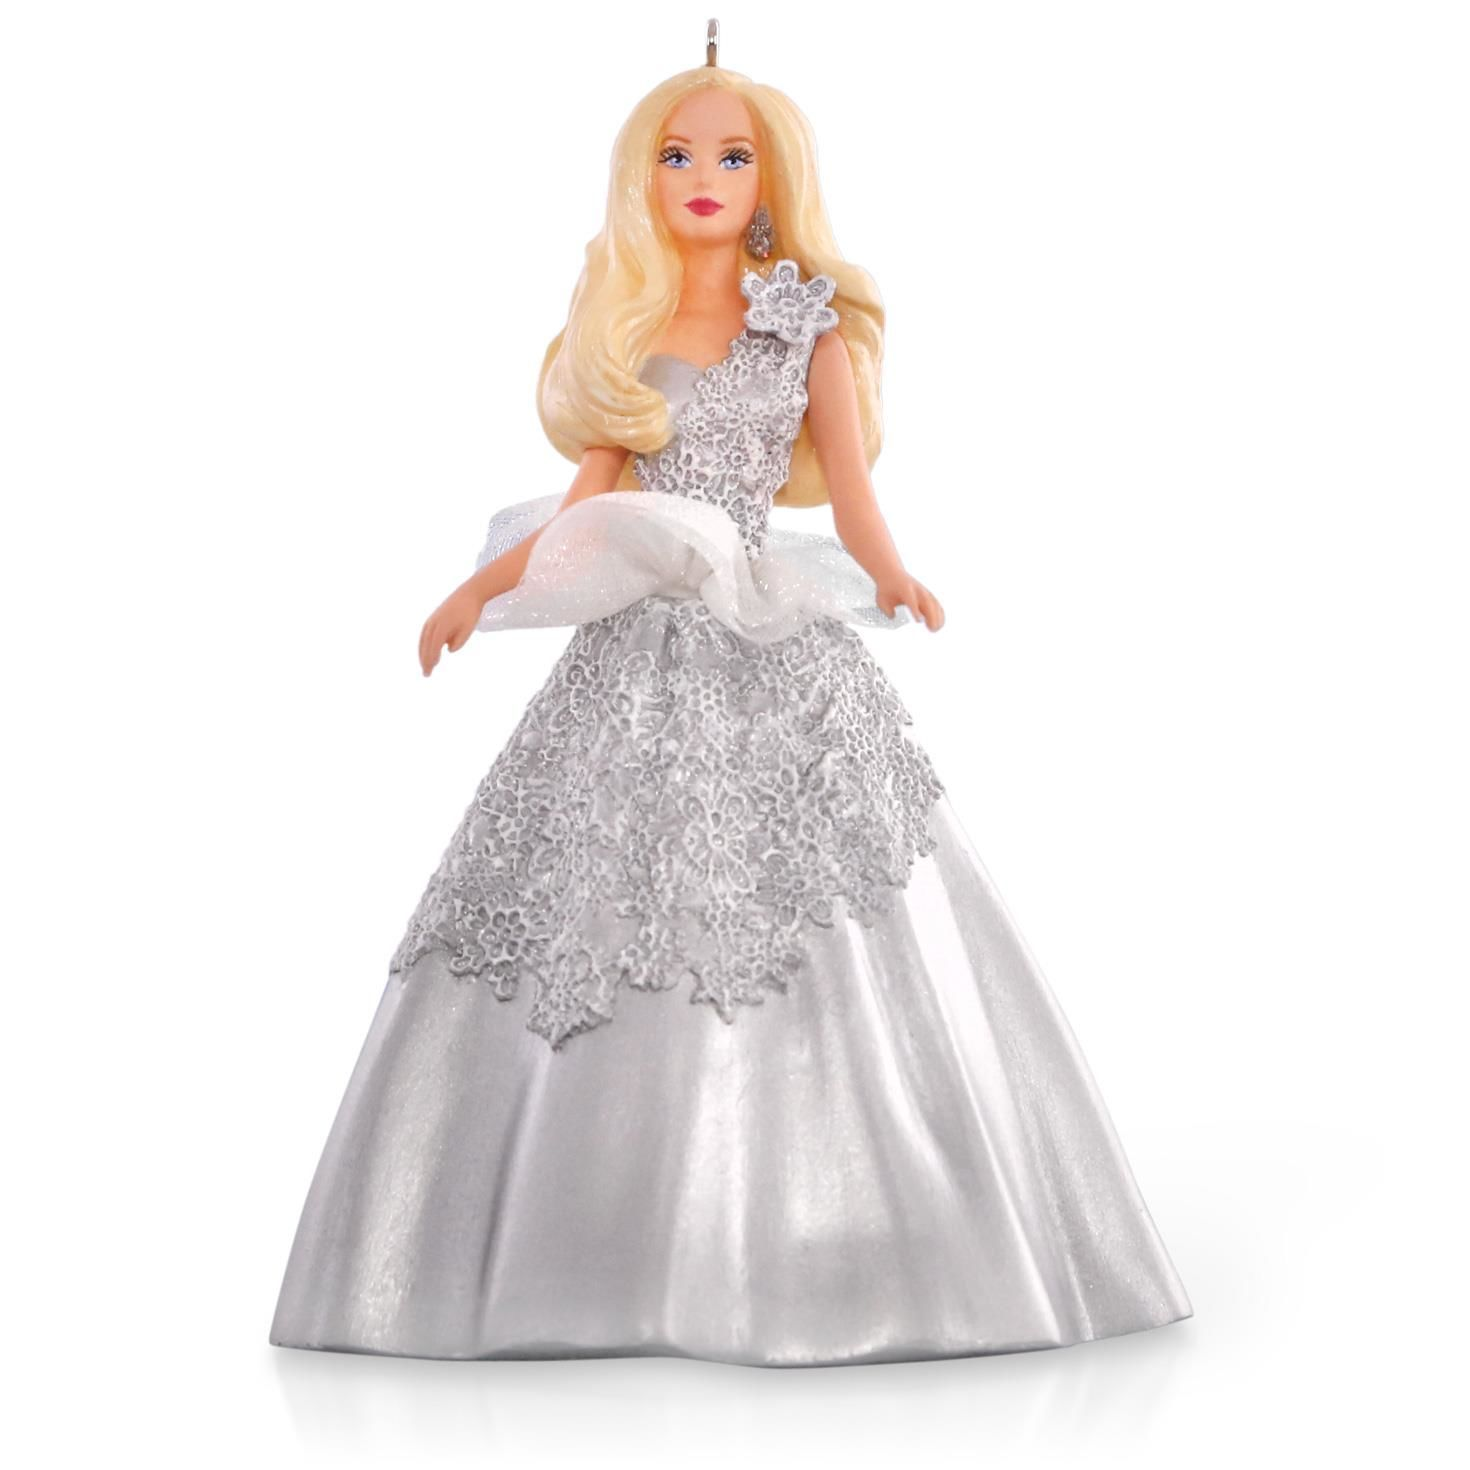 Pin By Kirschberry On Dolls In 2020 Barbie Holiday Barbie Dolls Holiday Barbie